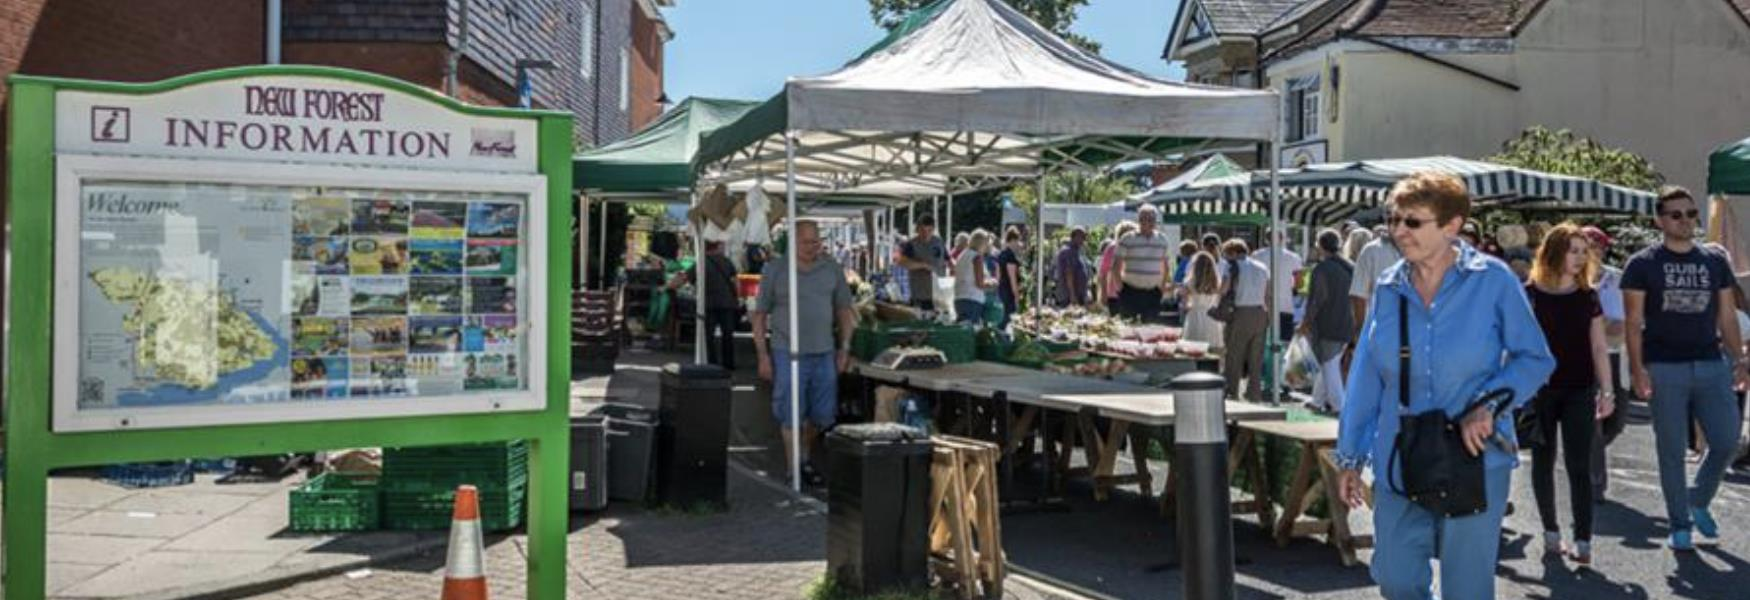 Weekly market event in Hythe in the New Forest